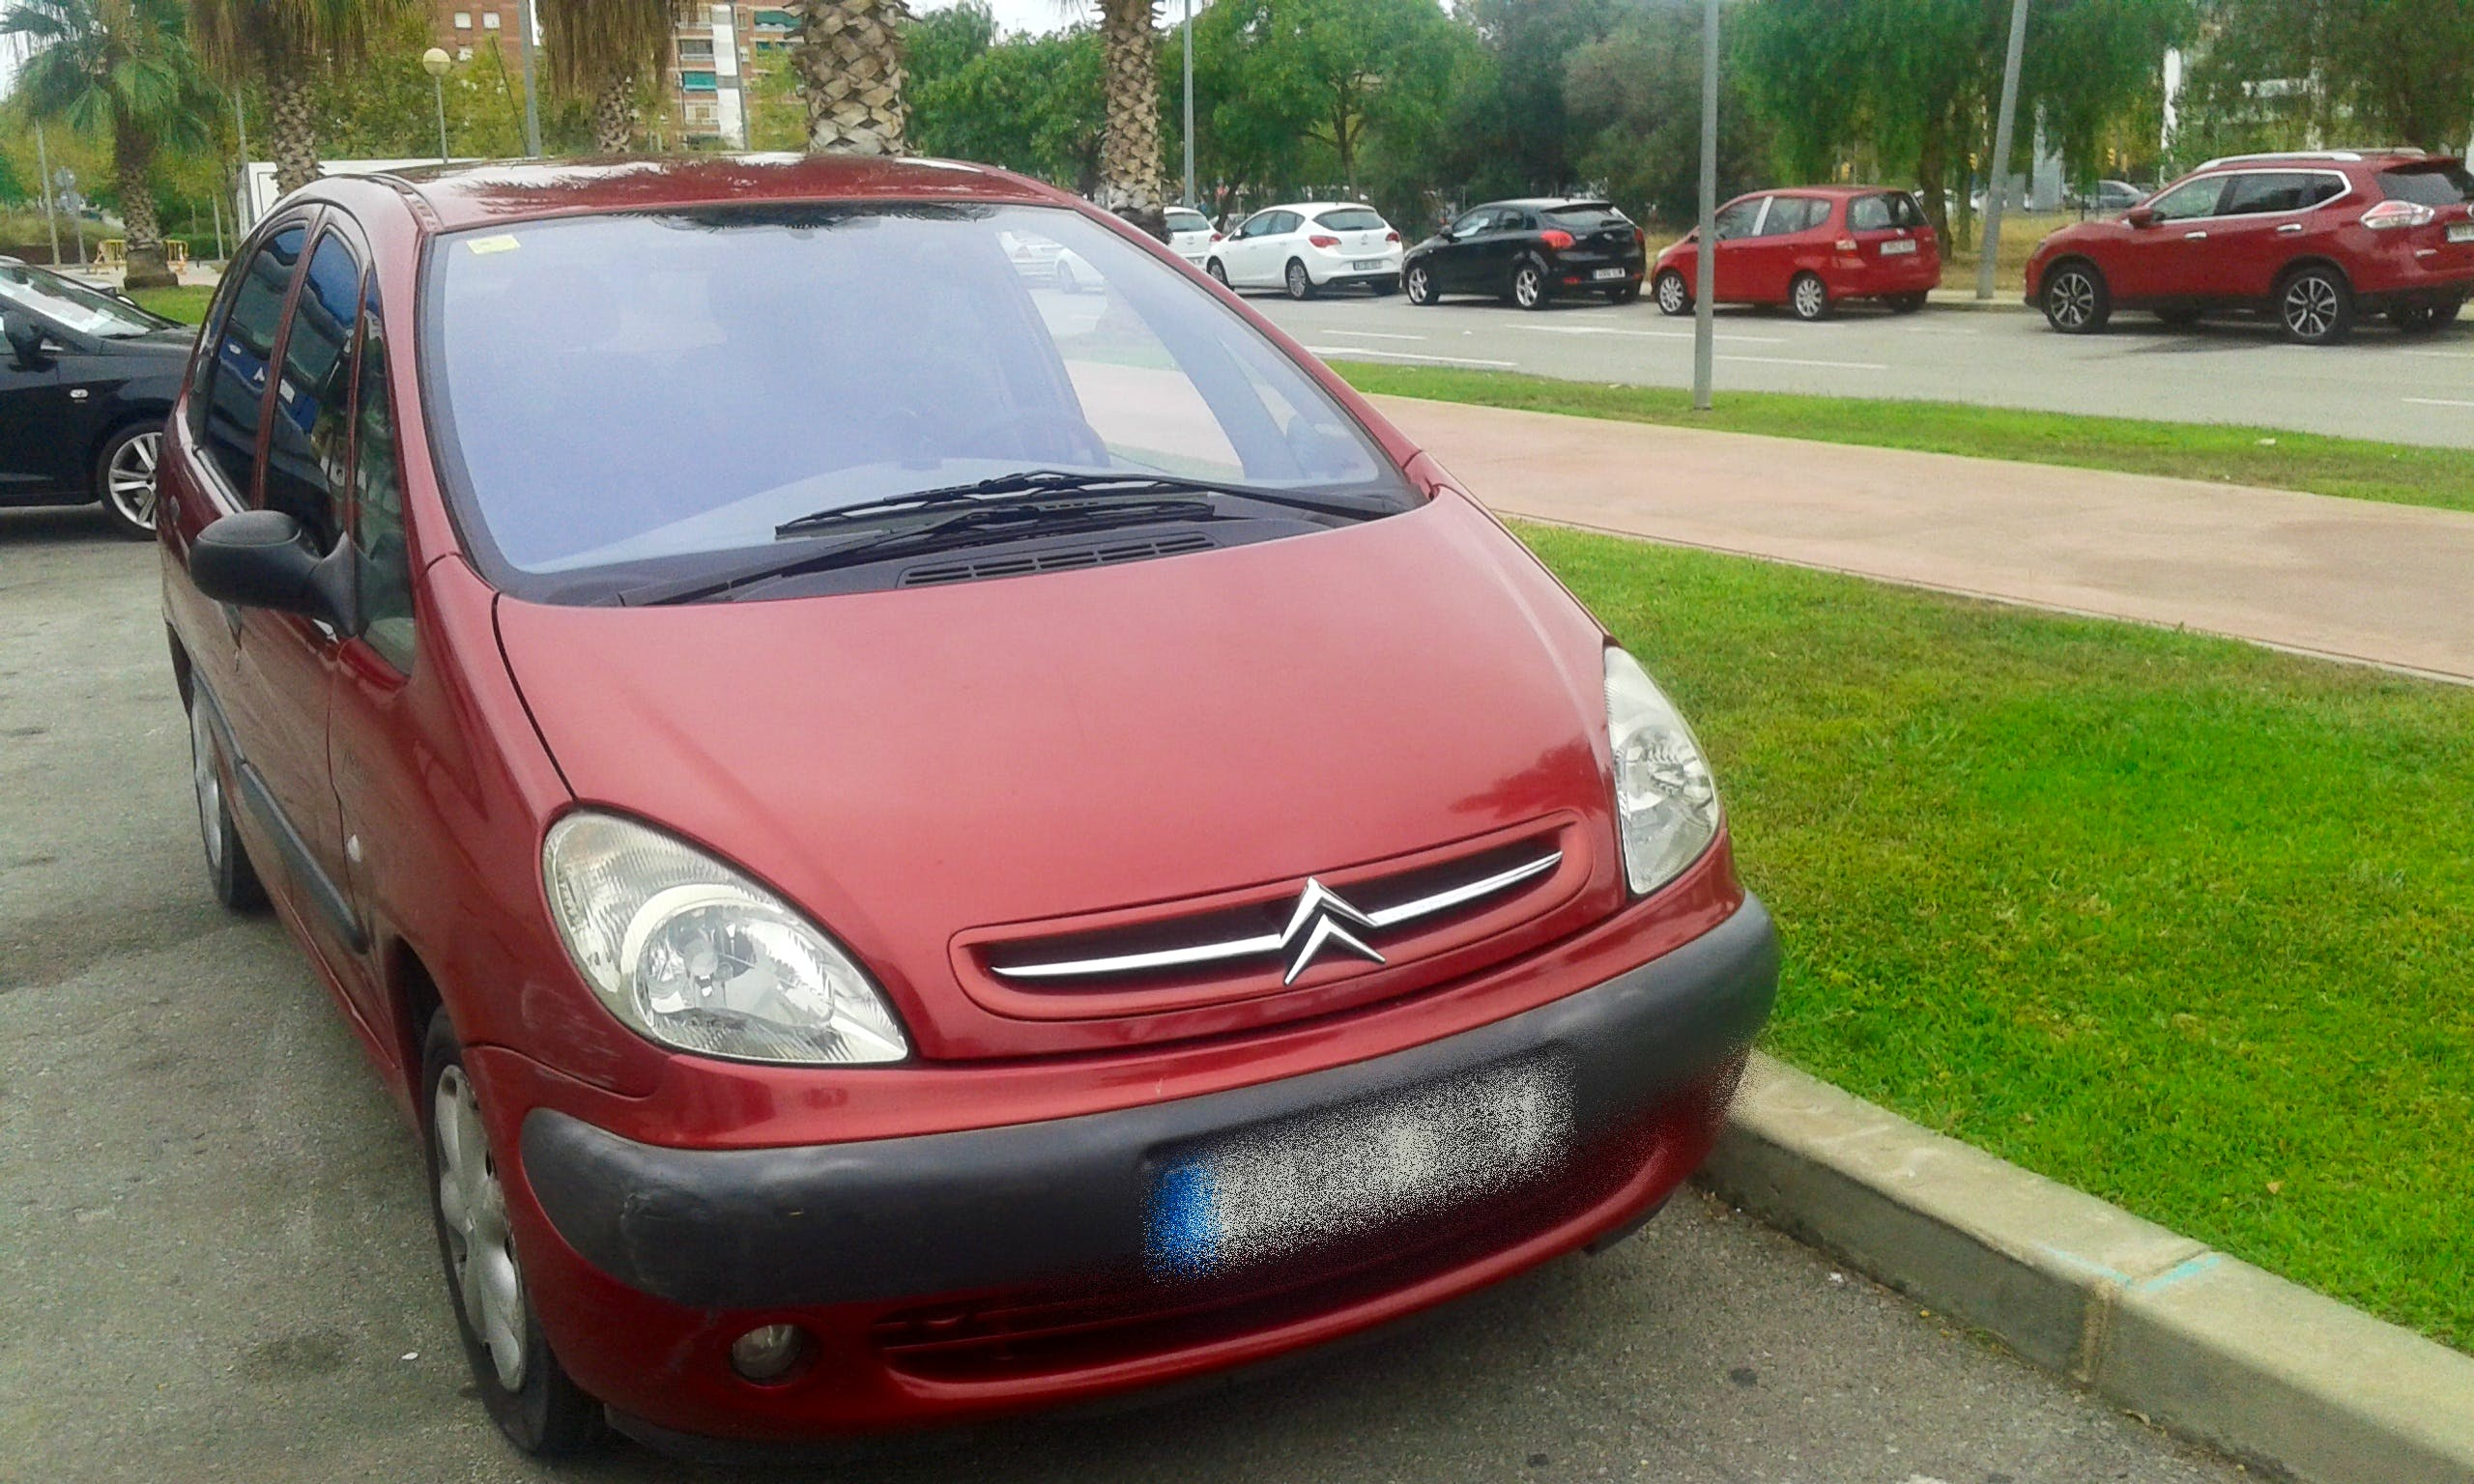 Citroen Xsara Picasso 2.0 90 CV EXCLUSIVE